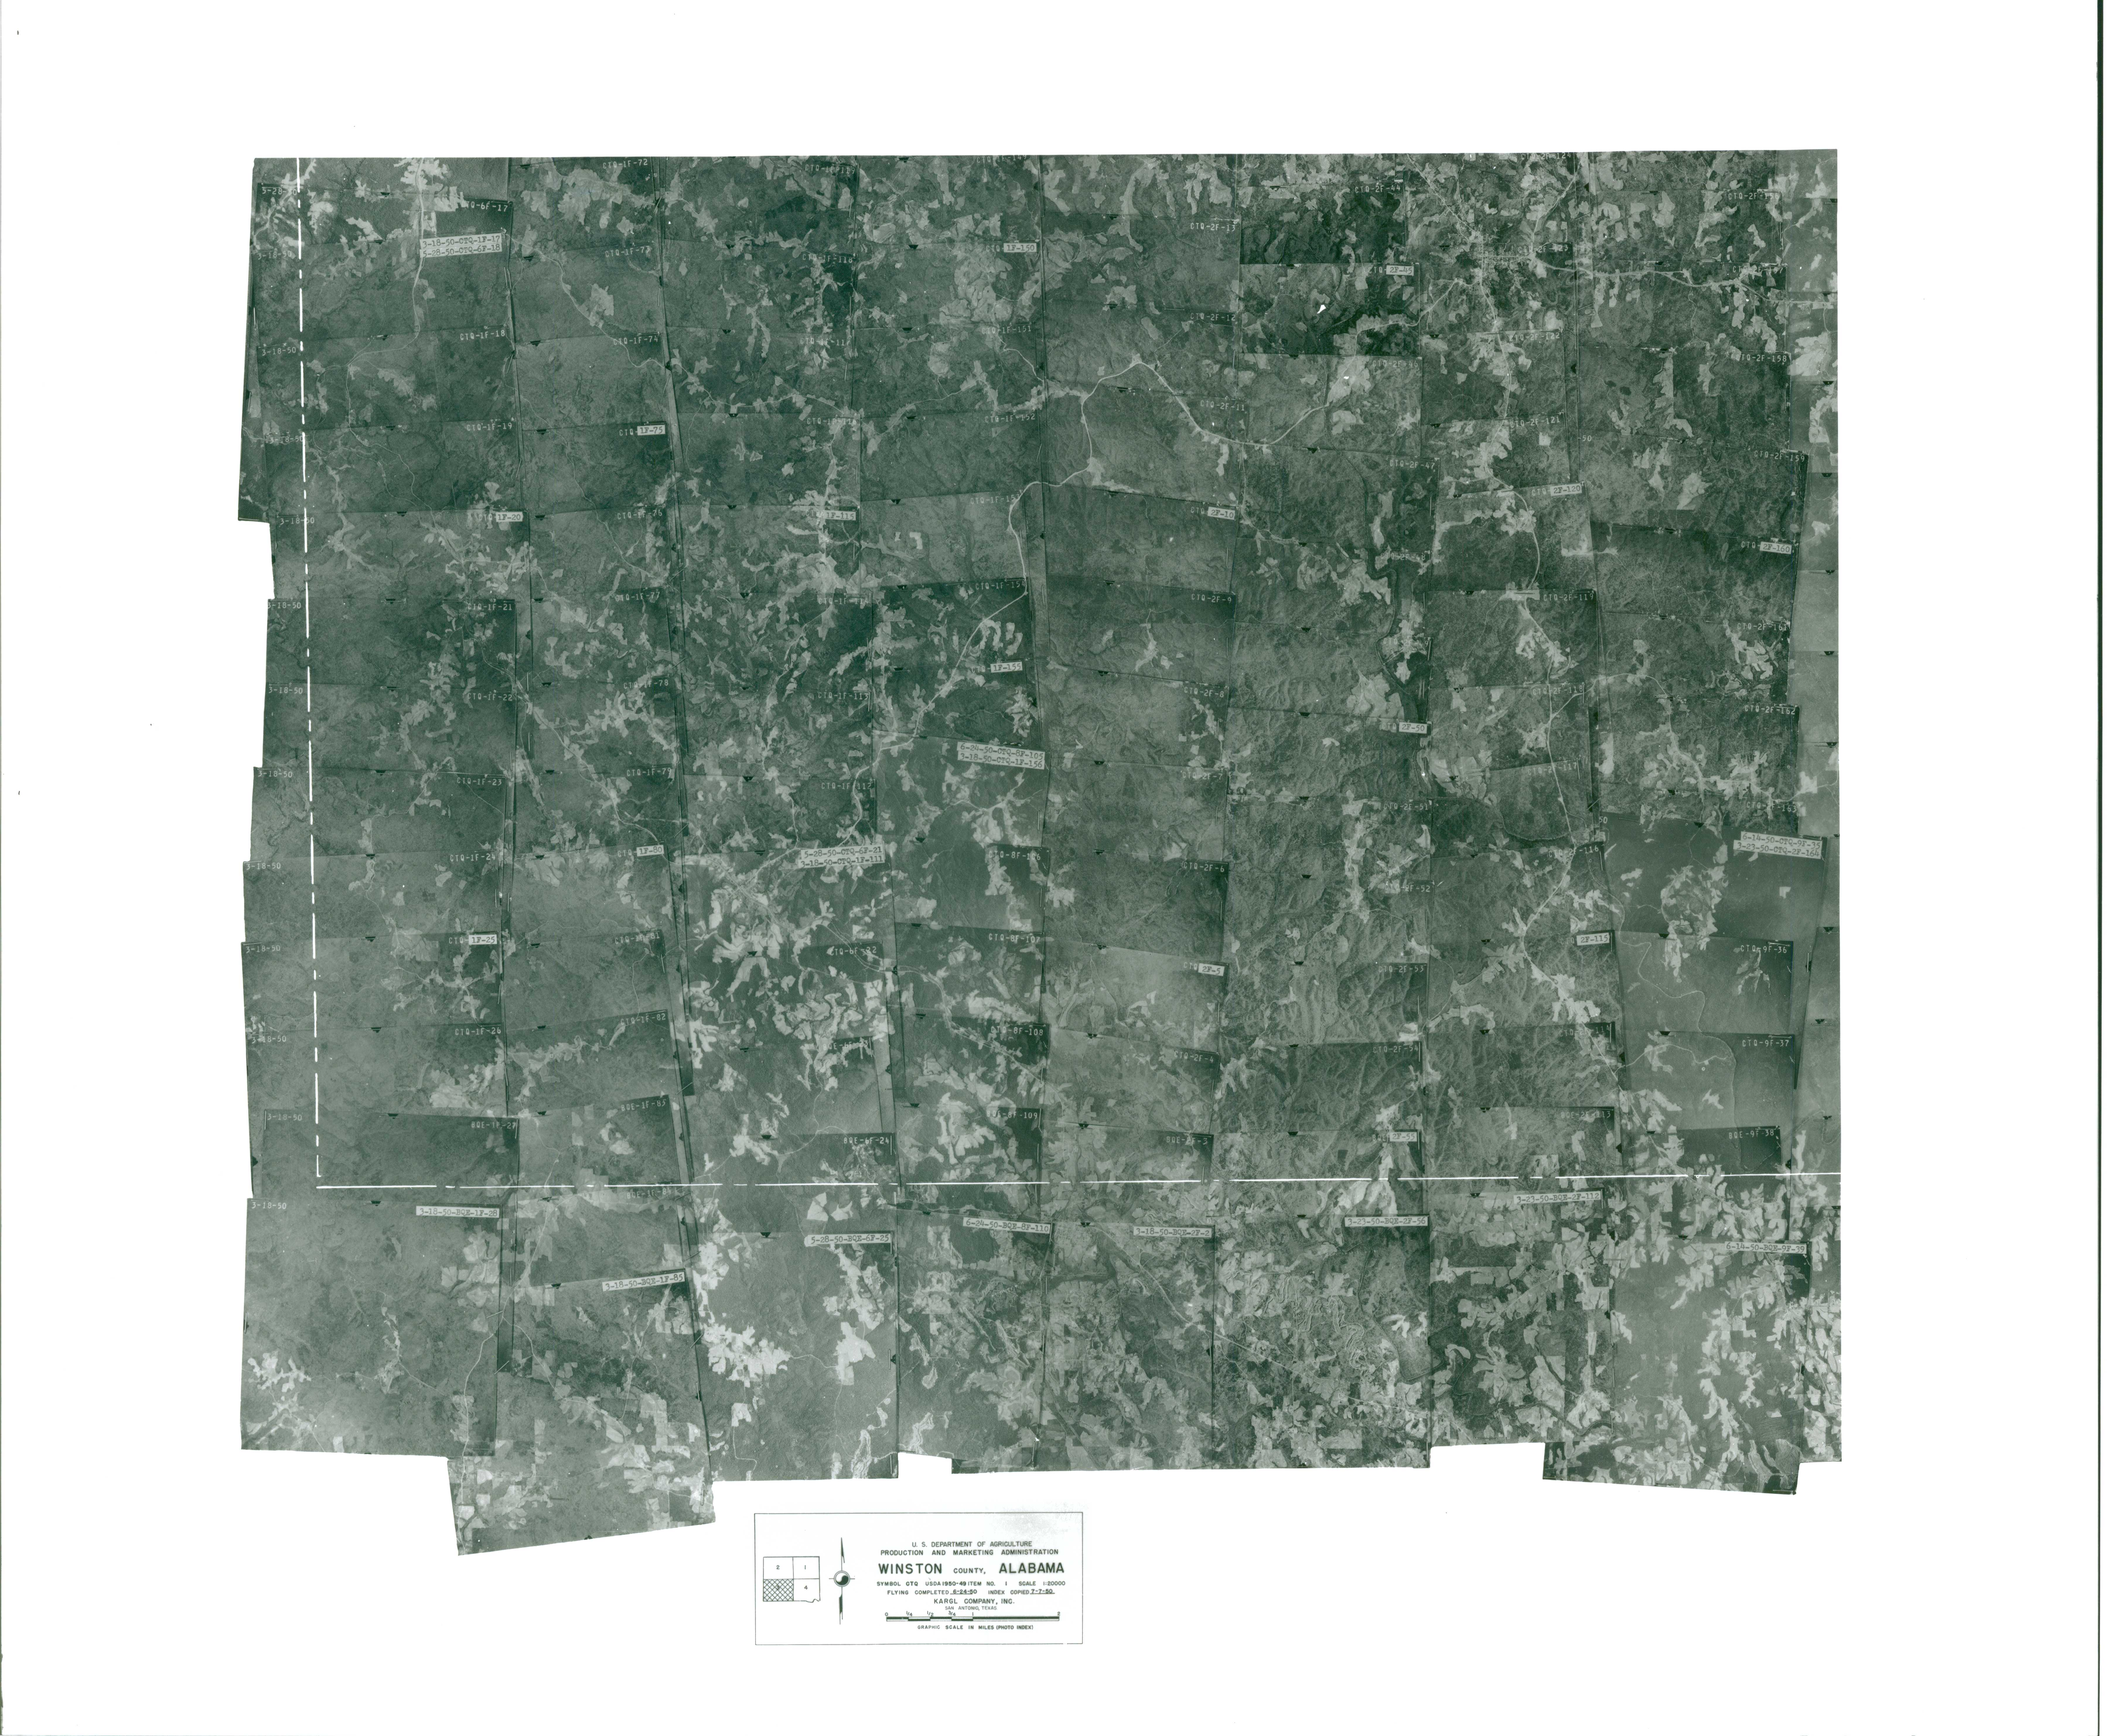 Aerial Photography Index for Winston County, Alabama, Sheet 3